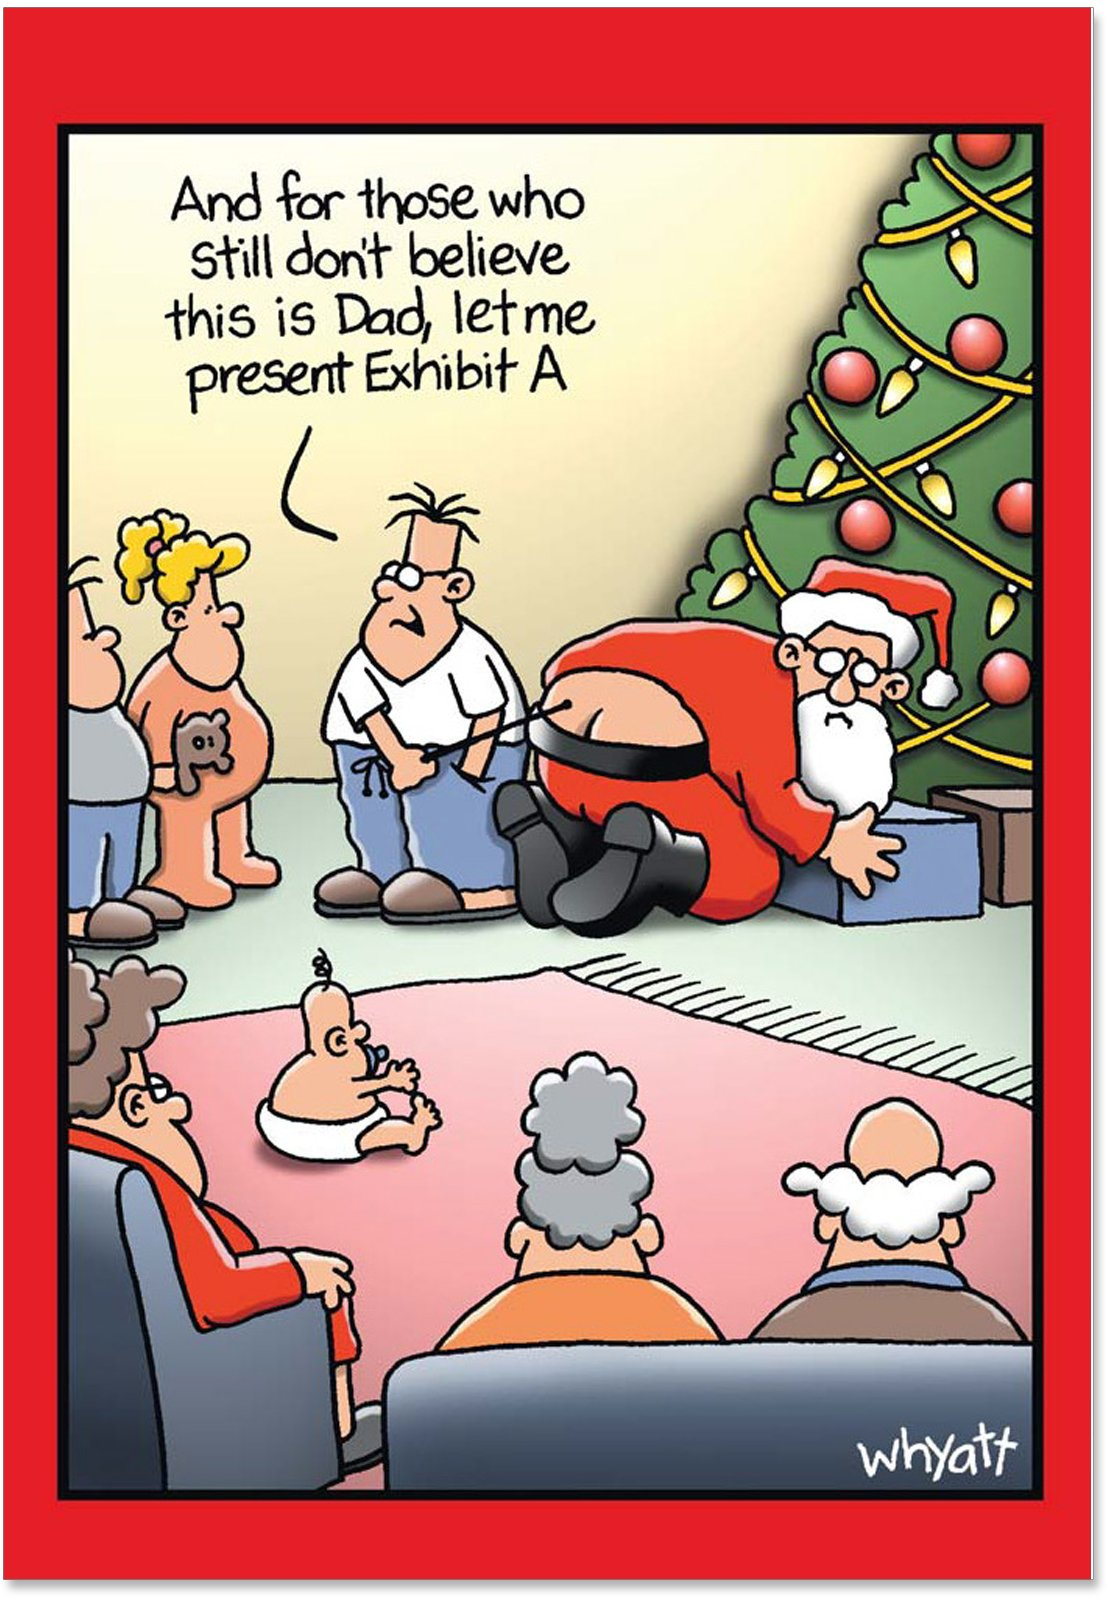 12 'Exhibit A' Hilarious Boxed Christmas Greeting Cards 4.63 x 6.75 inch, Merry Xmas Note Cards for Holidays, Gifts, Funny Dad and Santa Humor, Notecard Stationery w/Envelopes B1191